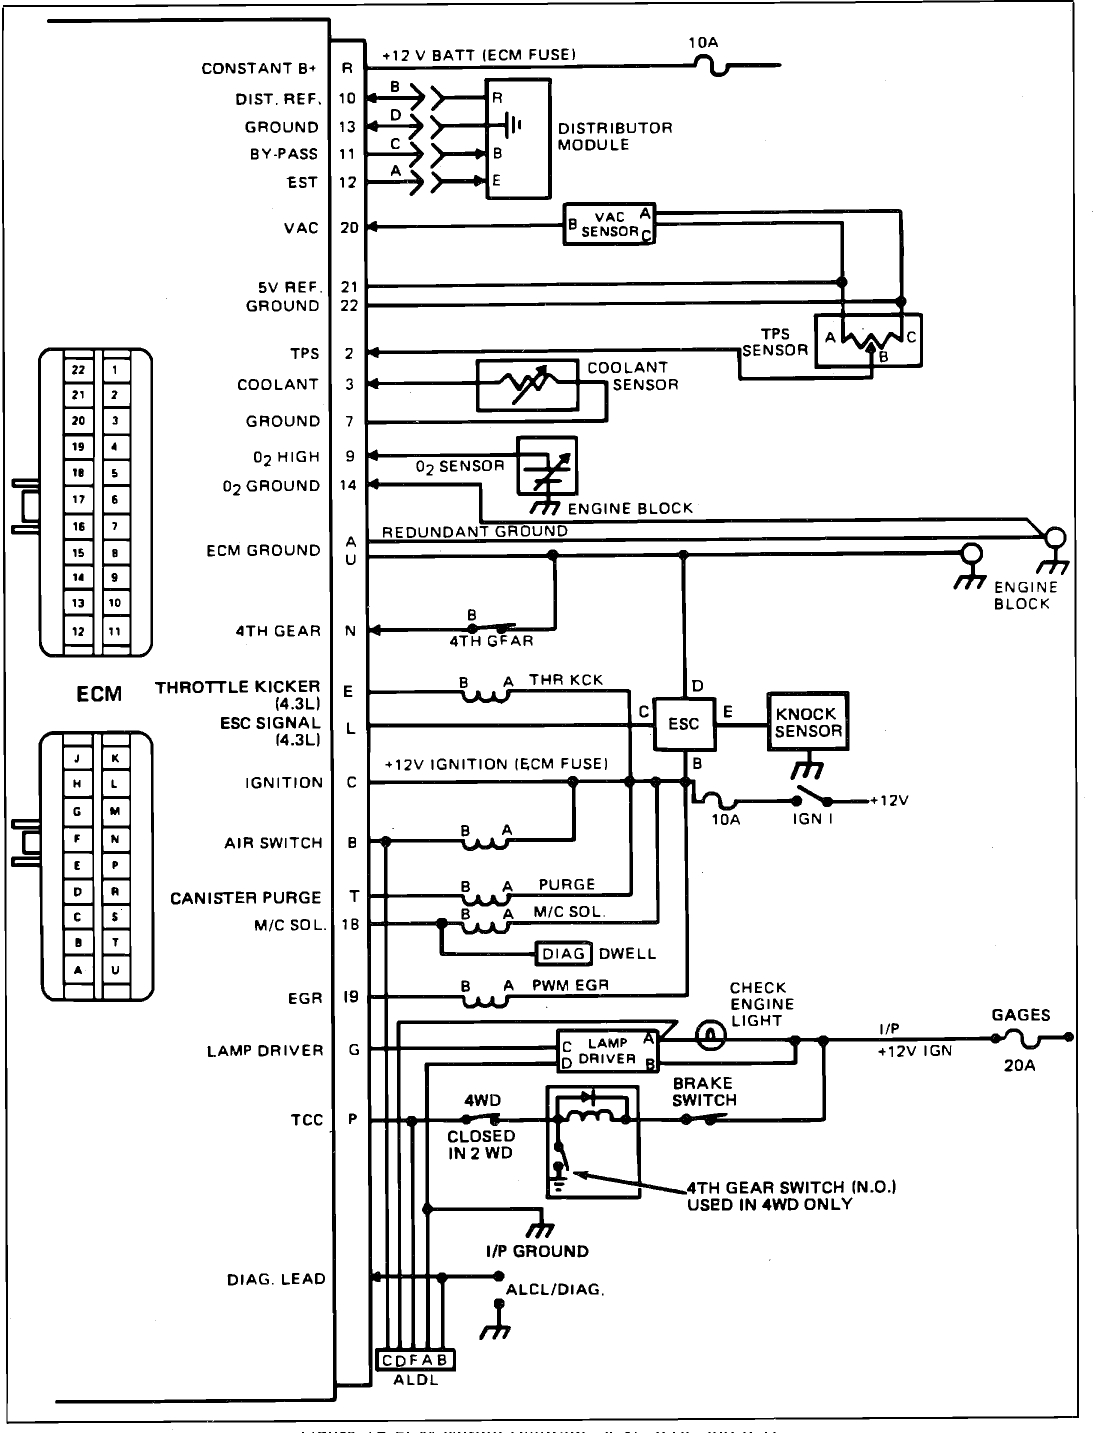 1995 K1500 Ac Wiring Diagram | Wiring Diagram on